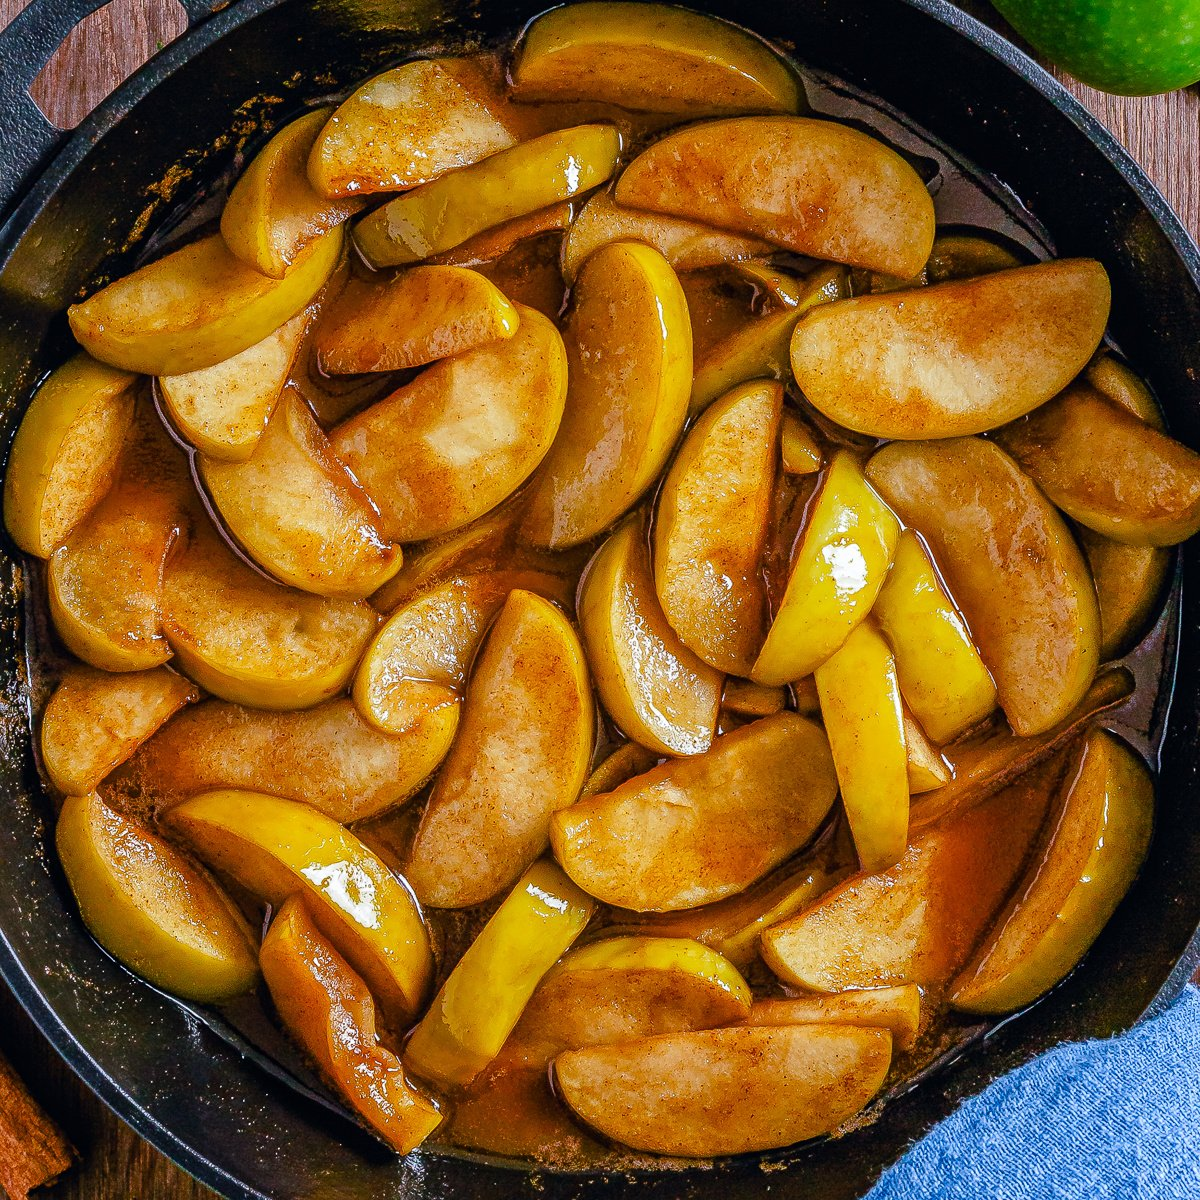 Square photo overhead of Fried Apples in skillet.